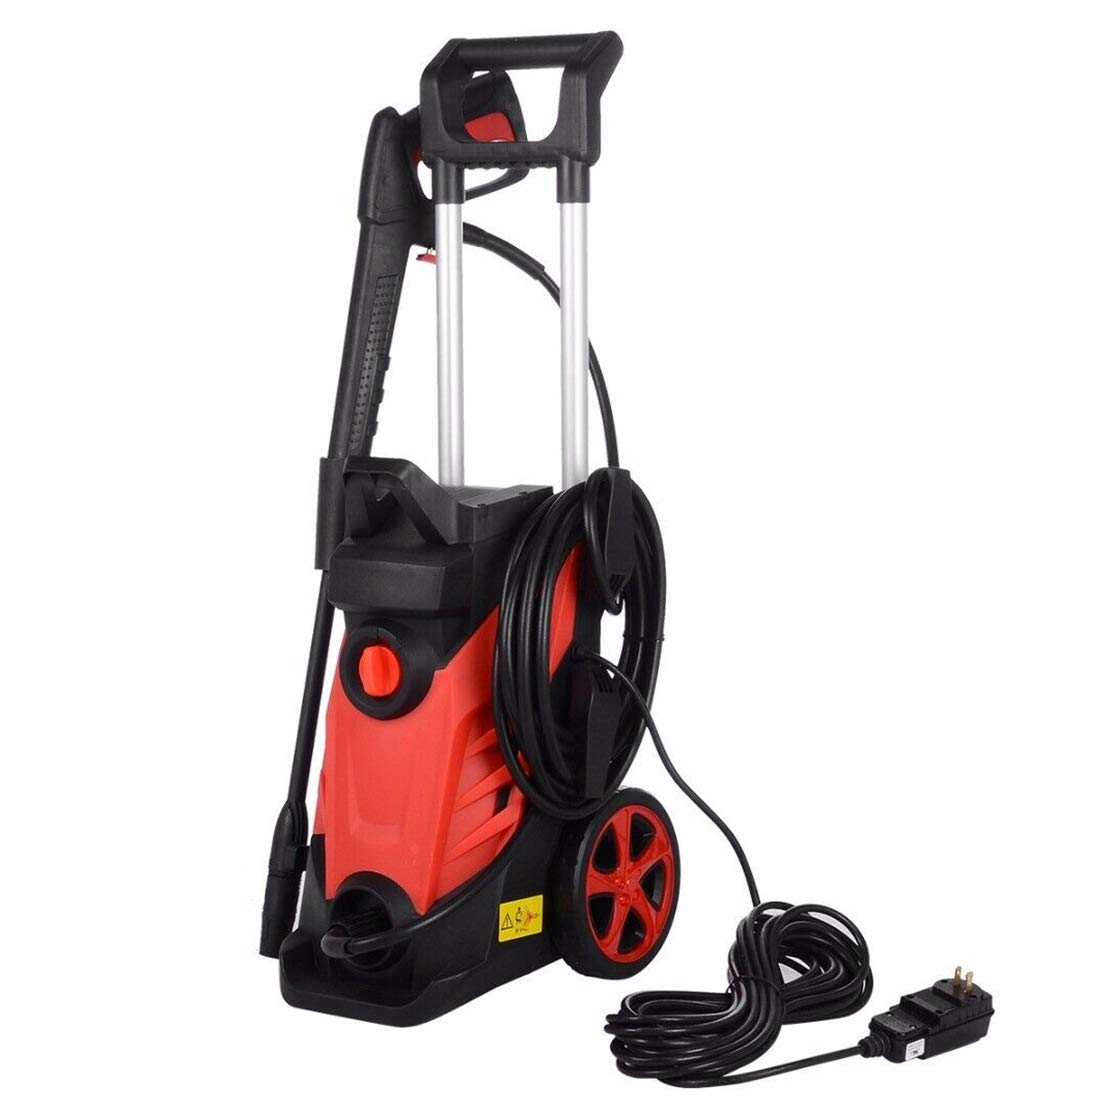 Cool furniture 2180PSI Water Electric Pressure Washer Kit 2.9 GPM Power W/Hose Detergent US by Cool furniture